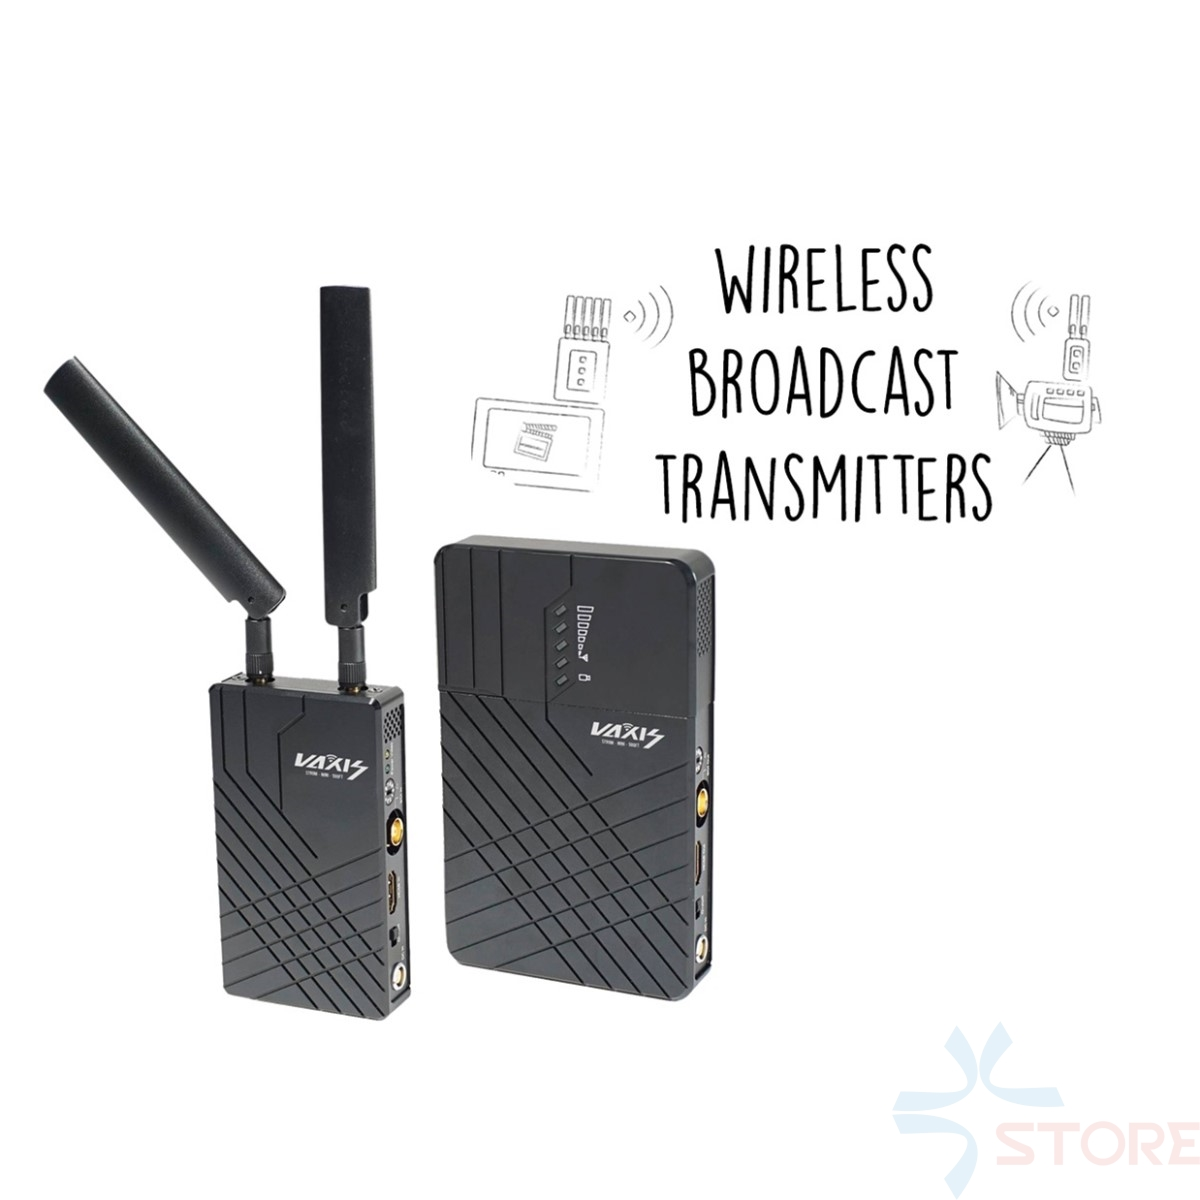 Vaxis Storm 500ft SDI HDMI Wireless Transmitter and Receiver System (150m) WDHI Long Range Professional Broadcast Cameara viper storm vii 150